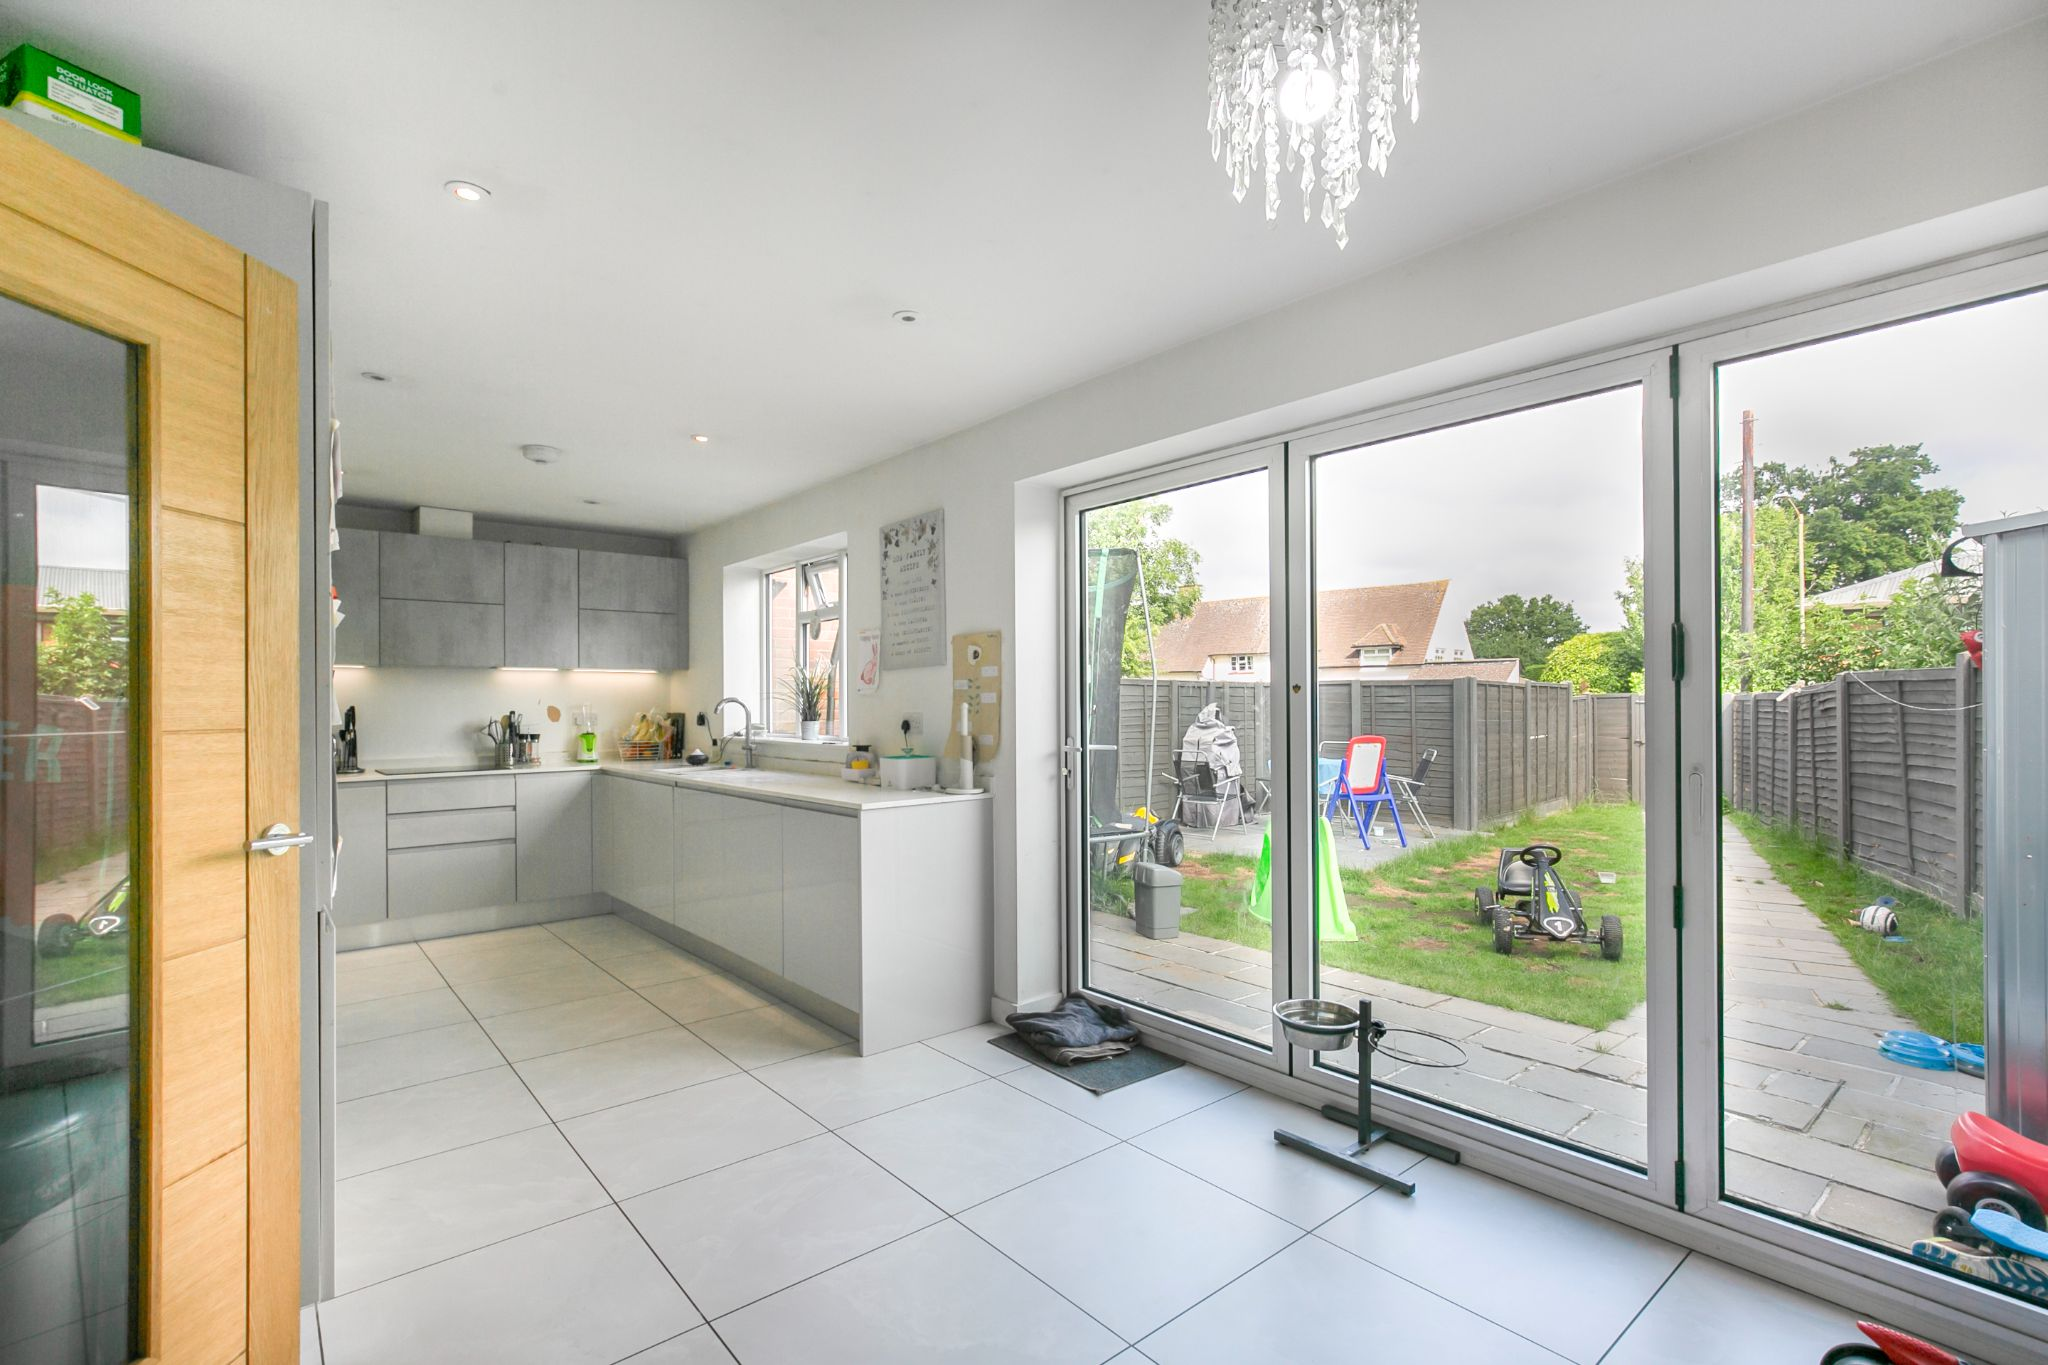 3 bedroom mid terraced house For Sale in Hatfield - Photograph 7